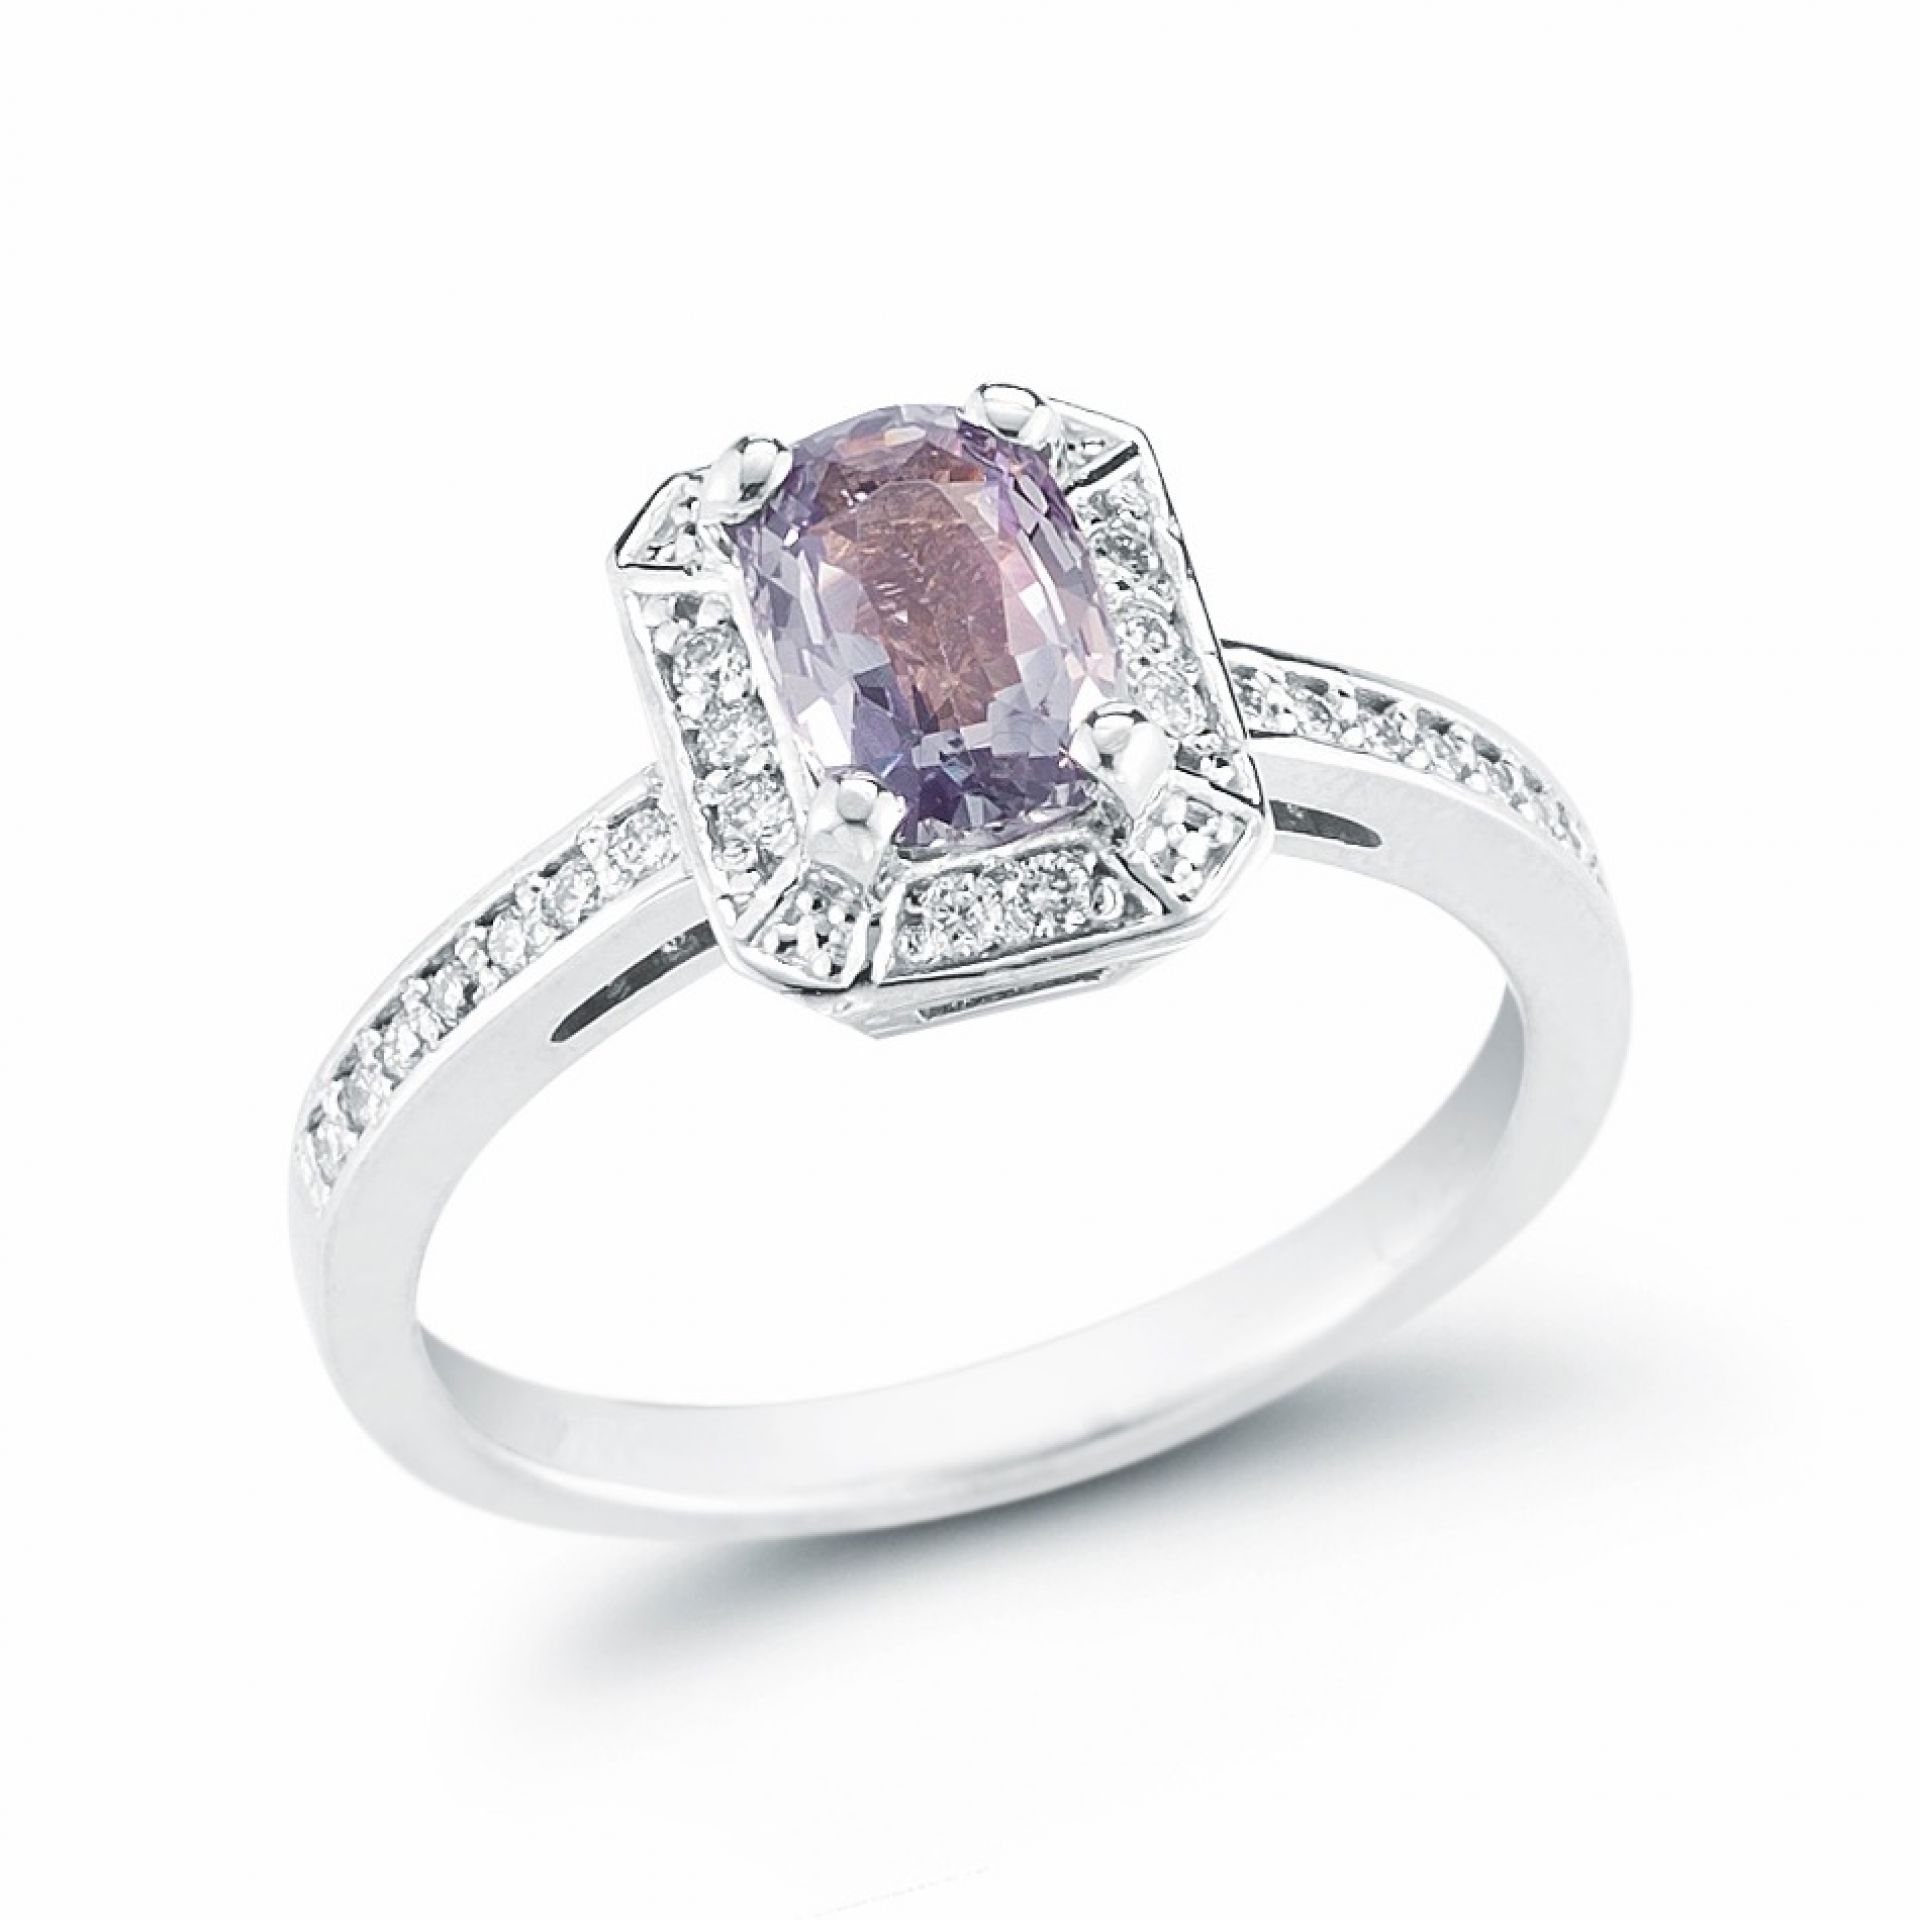 Emerald Cut Alexandrite and Diamond Ring R106570-1W